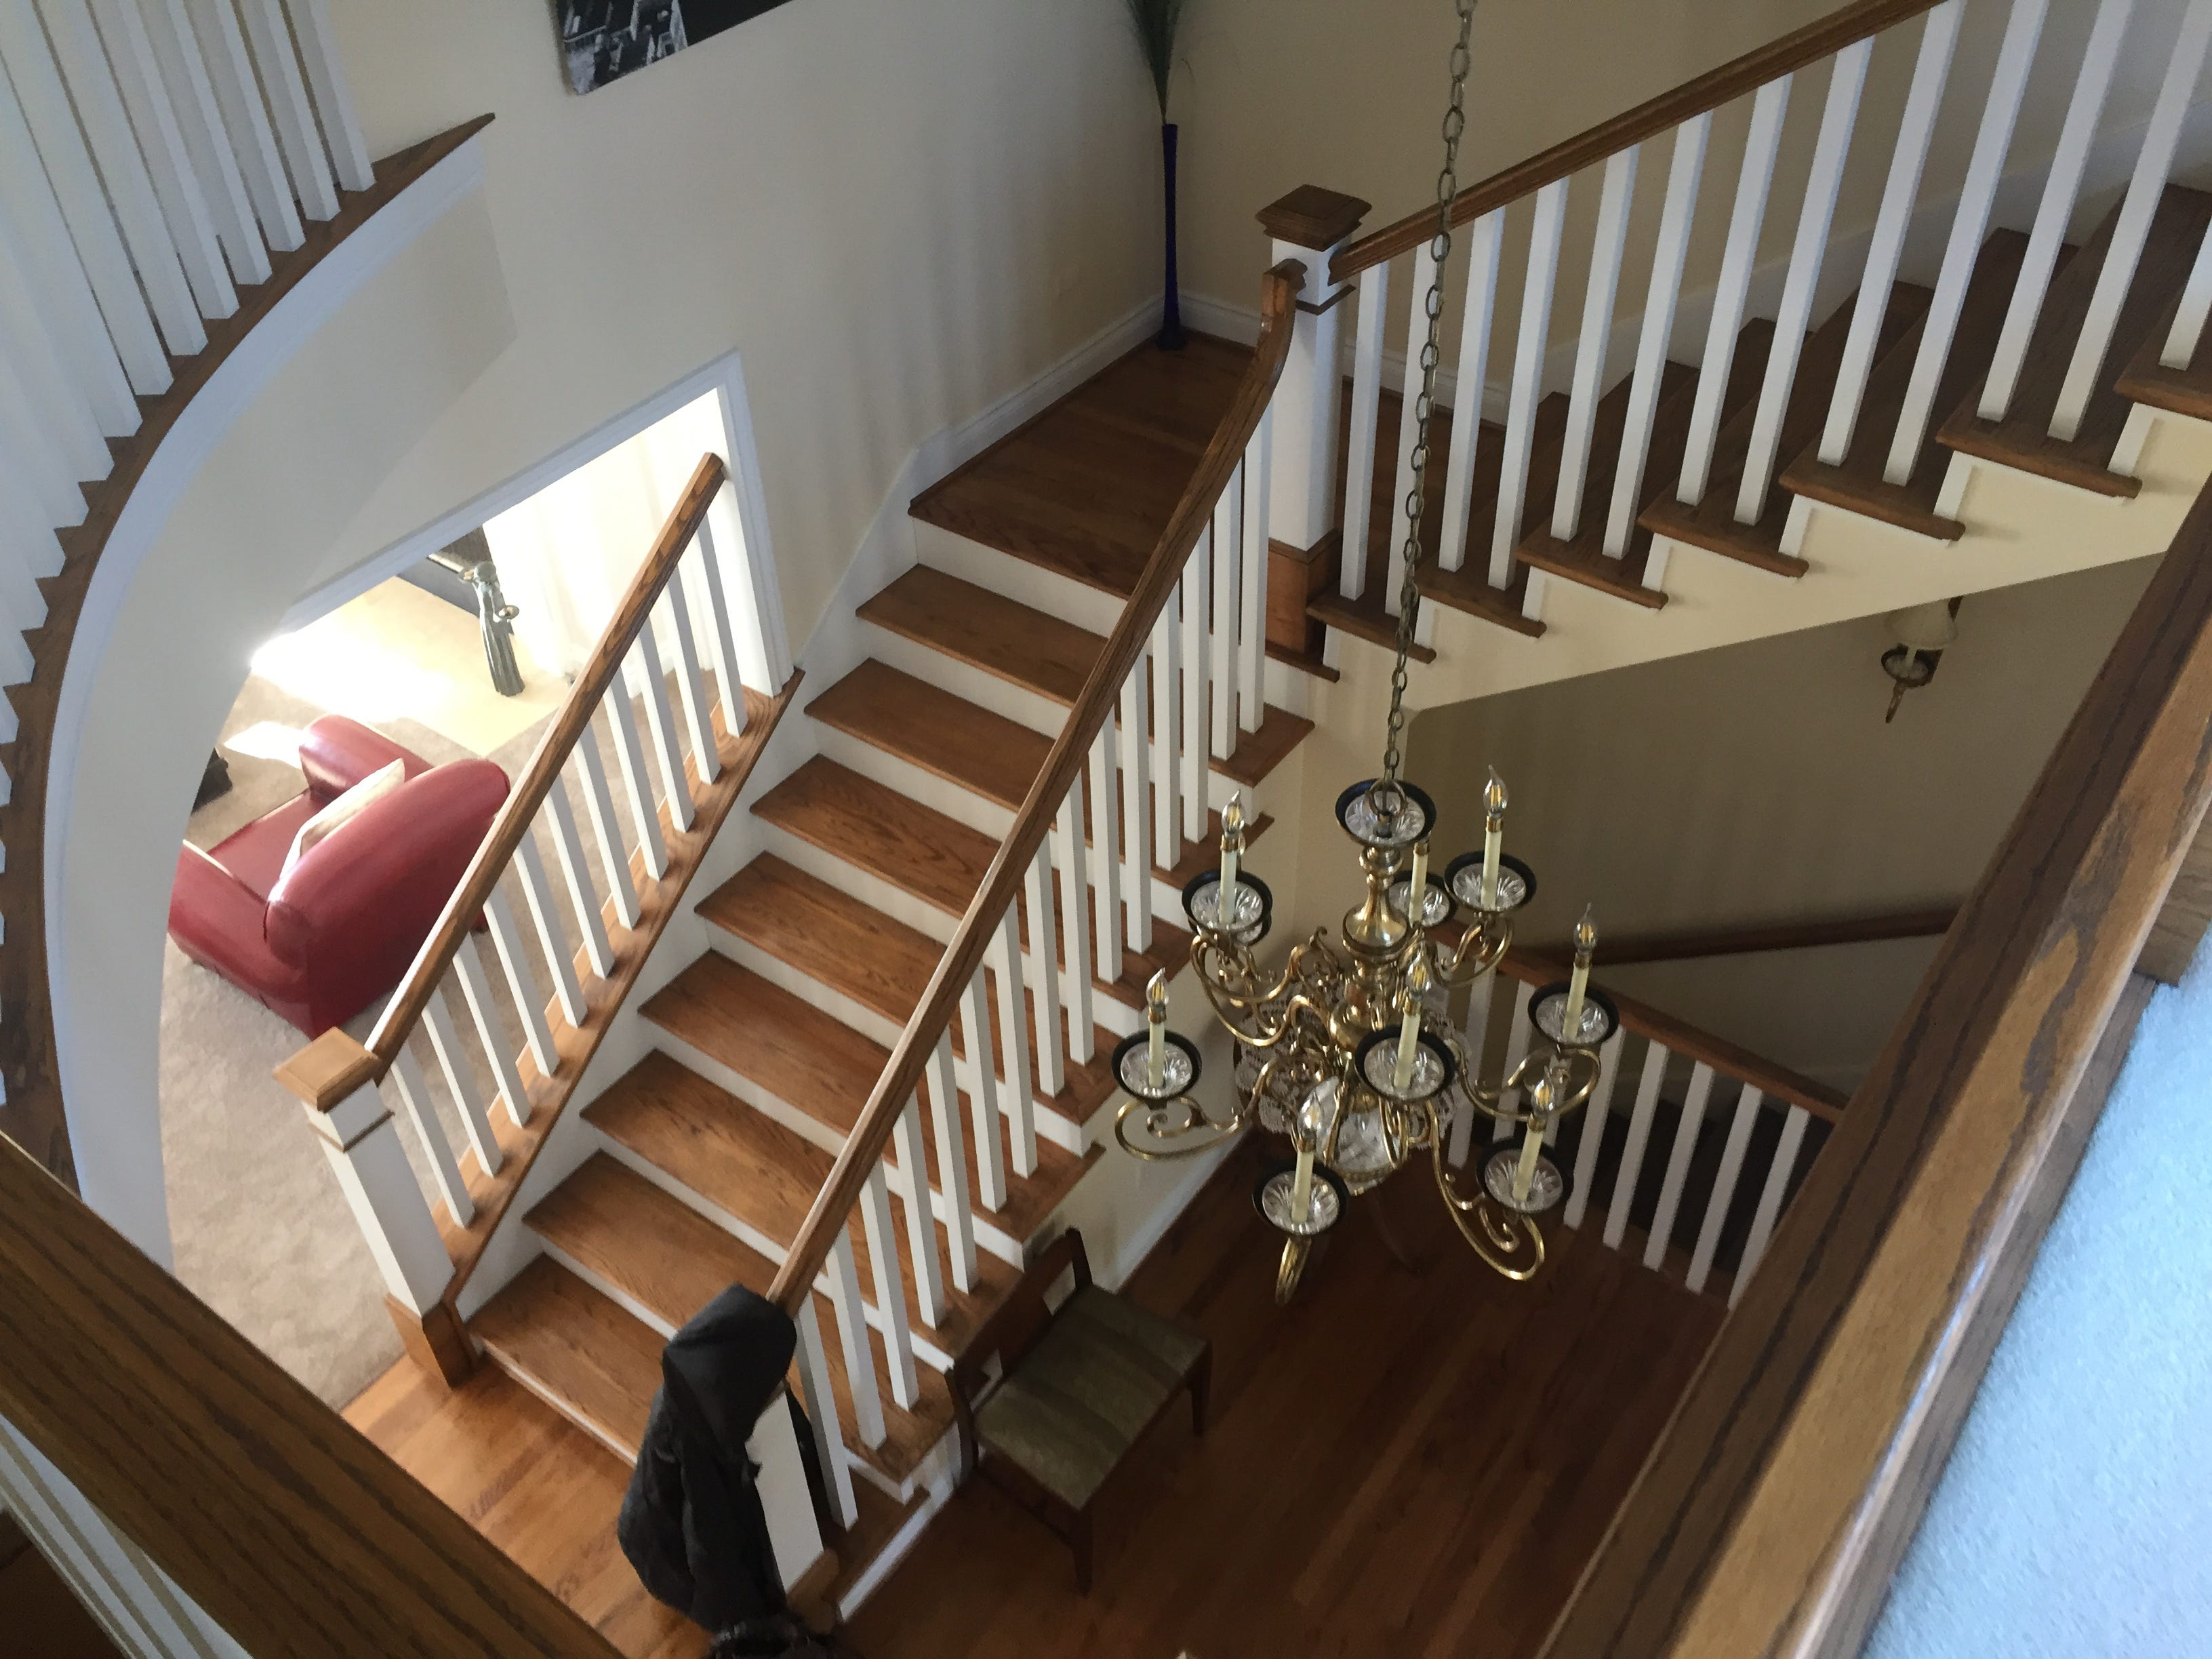 Winding staircases provide access from main level to the upper level and walk-out basement in a Clifford Road home in Genoa Township, shown Tuesday, Dec. 4, 2018